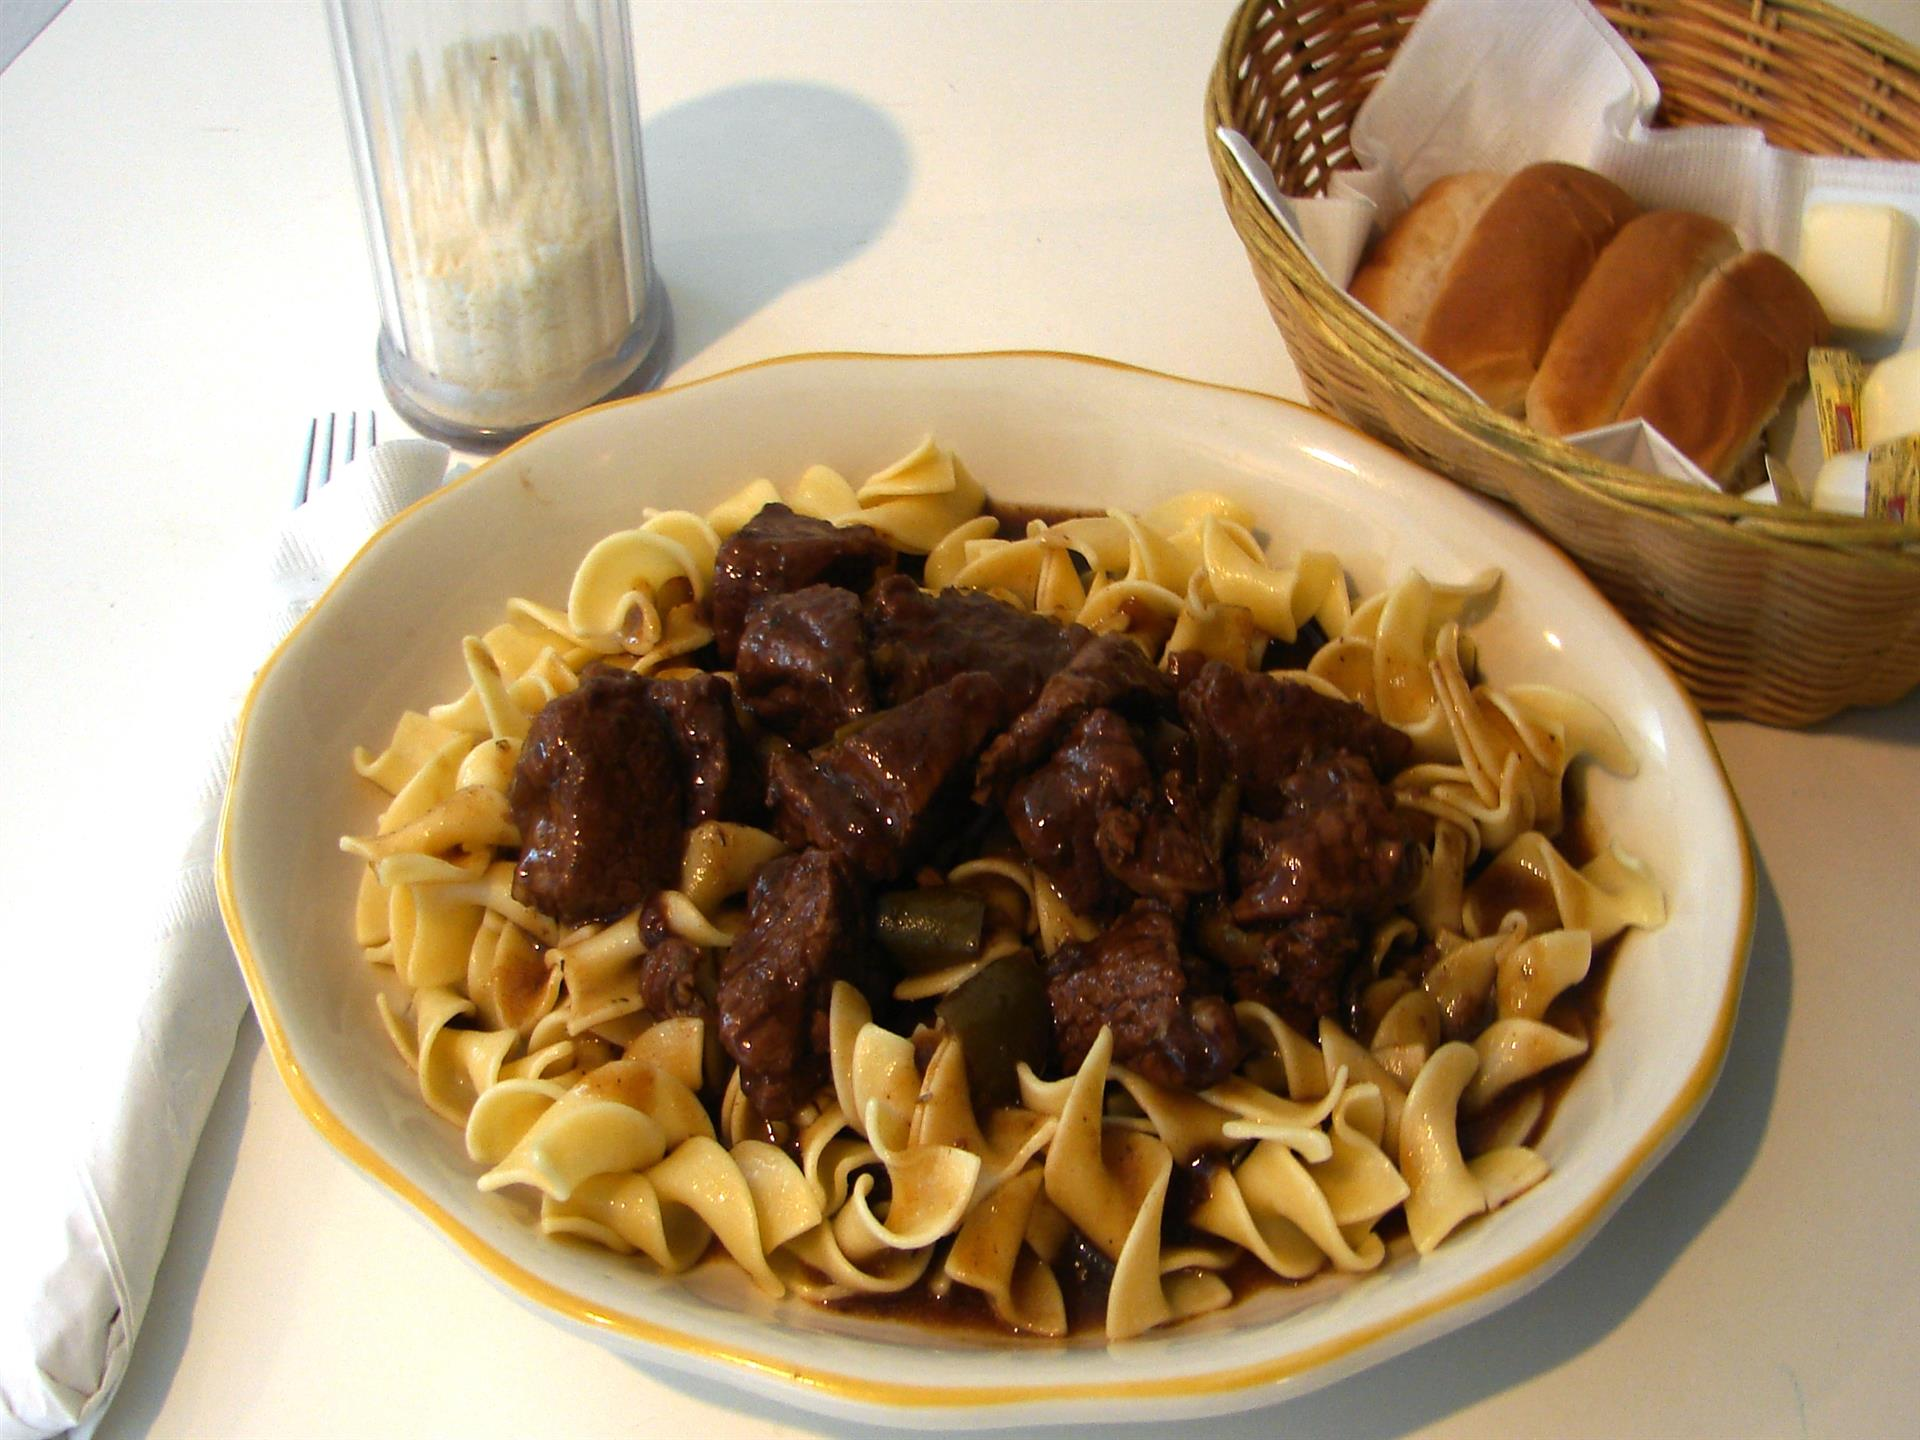 Noodles with beef in white dish, dinner rolls in basket.